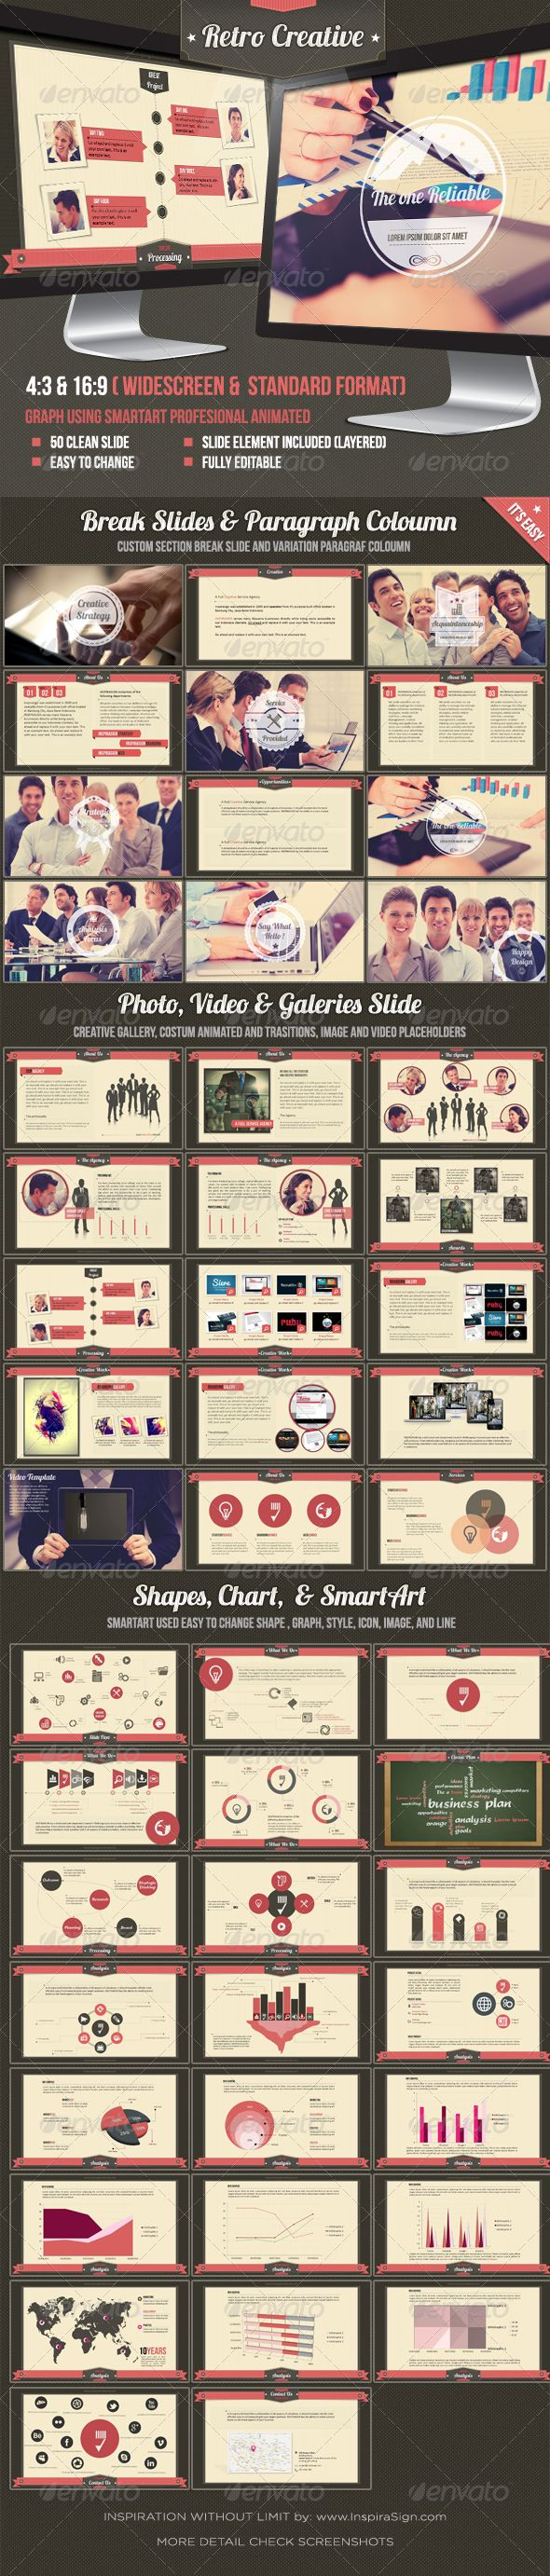 Retro Business Creative Agency Powerpoint Template - Creative Powerpoint Templates